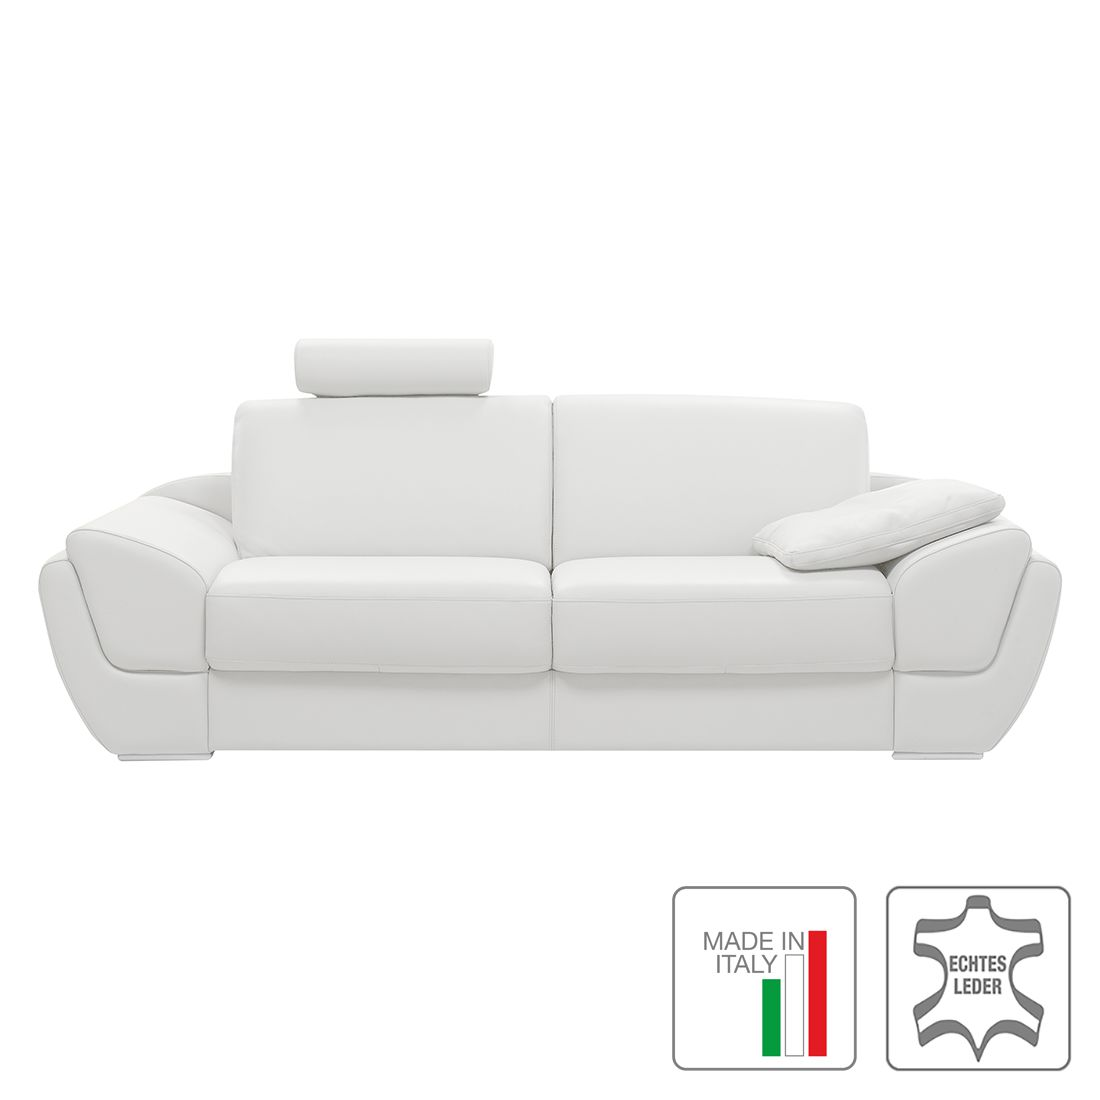 sofa roma 3 sitzer echtleder wei trend italiano g nstig online kaufen. Black Bedroom Furniture Sets. Home Design Ideas